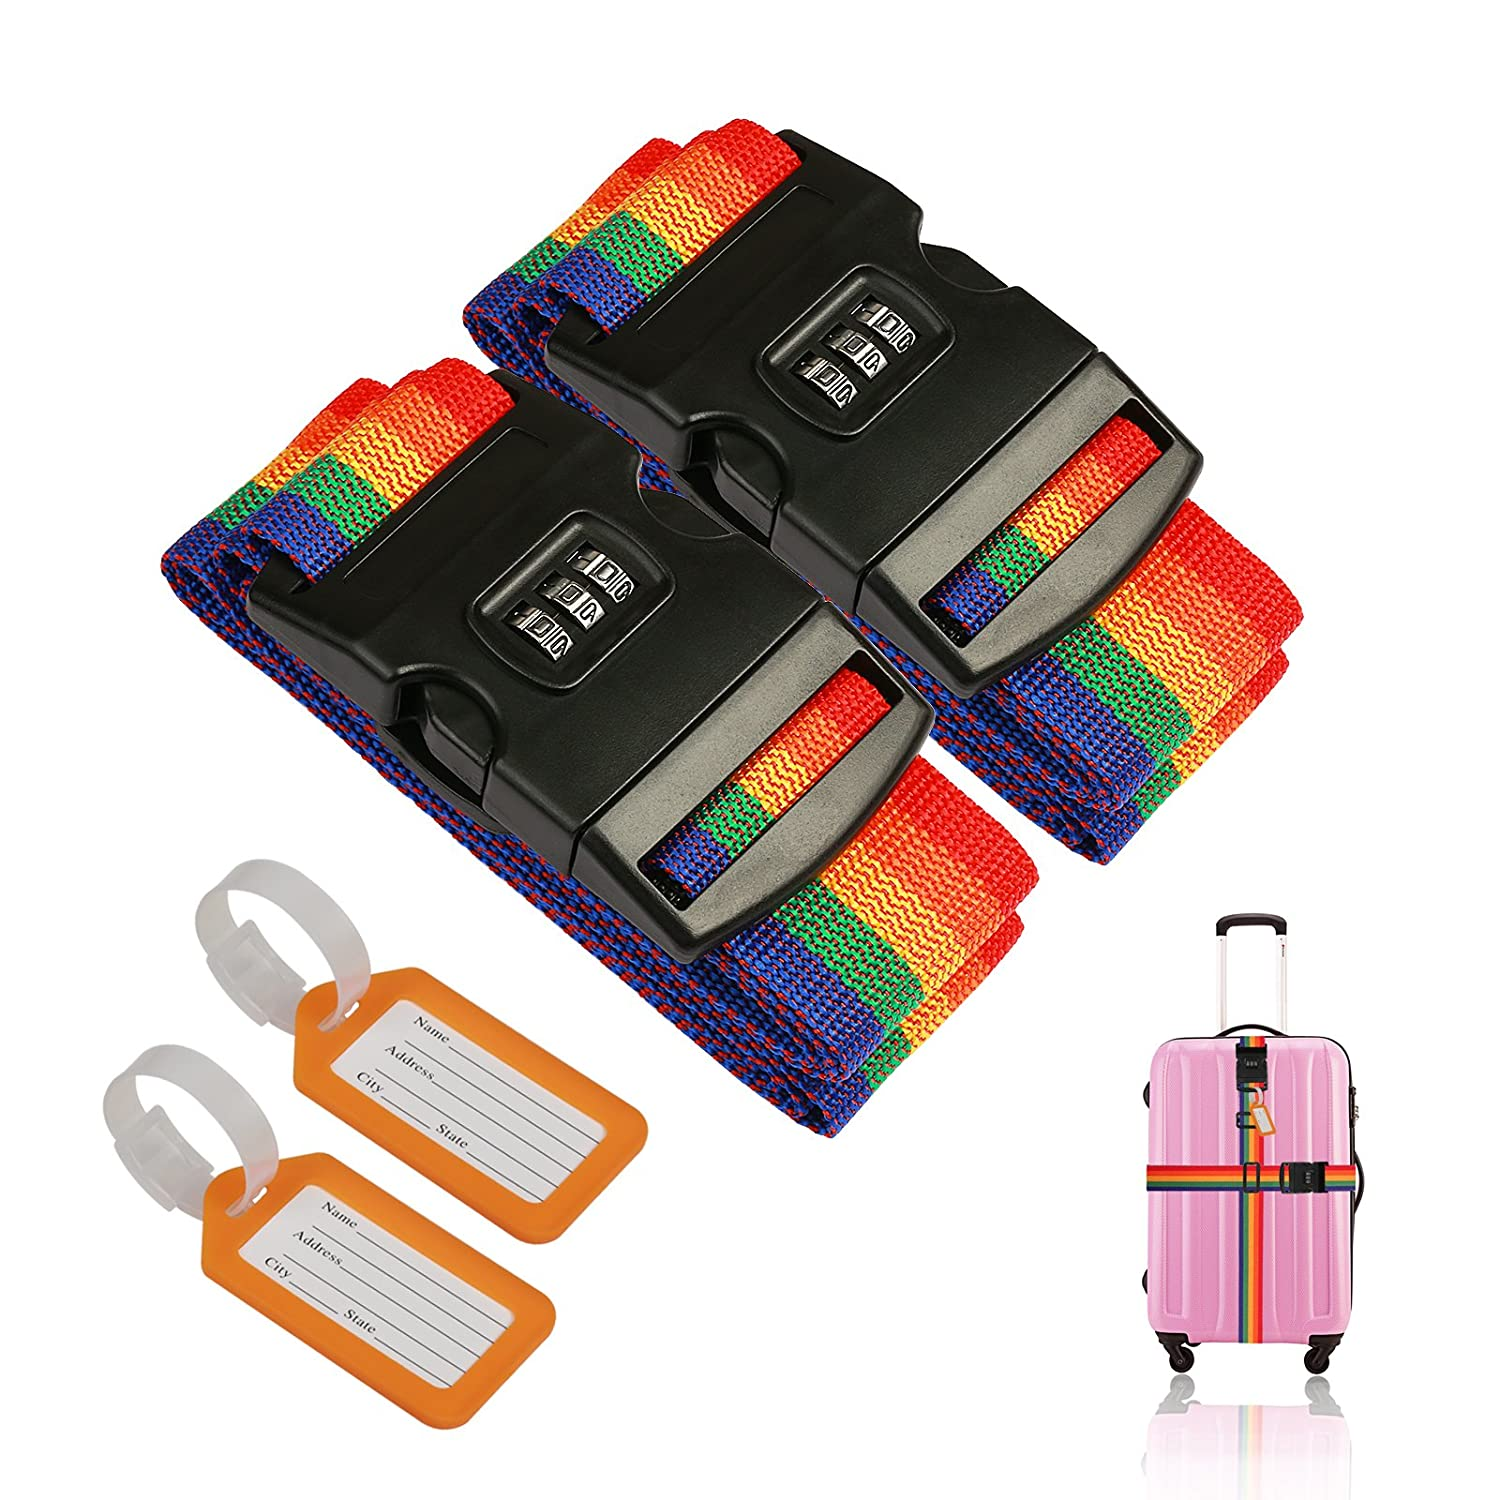 2 Pcs Luggage Strap ZoomSky Suitcase Belts Adjustable Travel Packing Belt Baggage Security Straps with Password Lock Clip and 2 Pcs Luggage Tags Labels Identifier